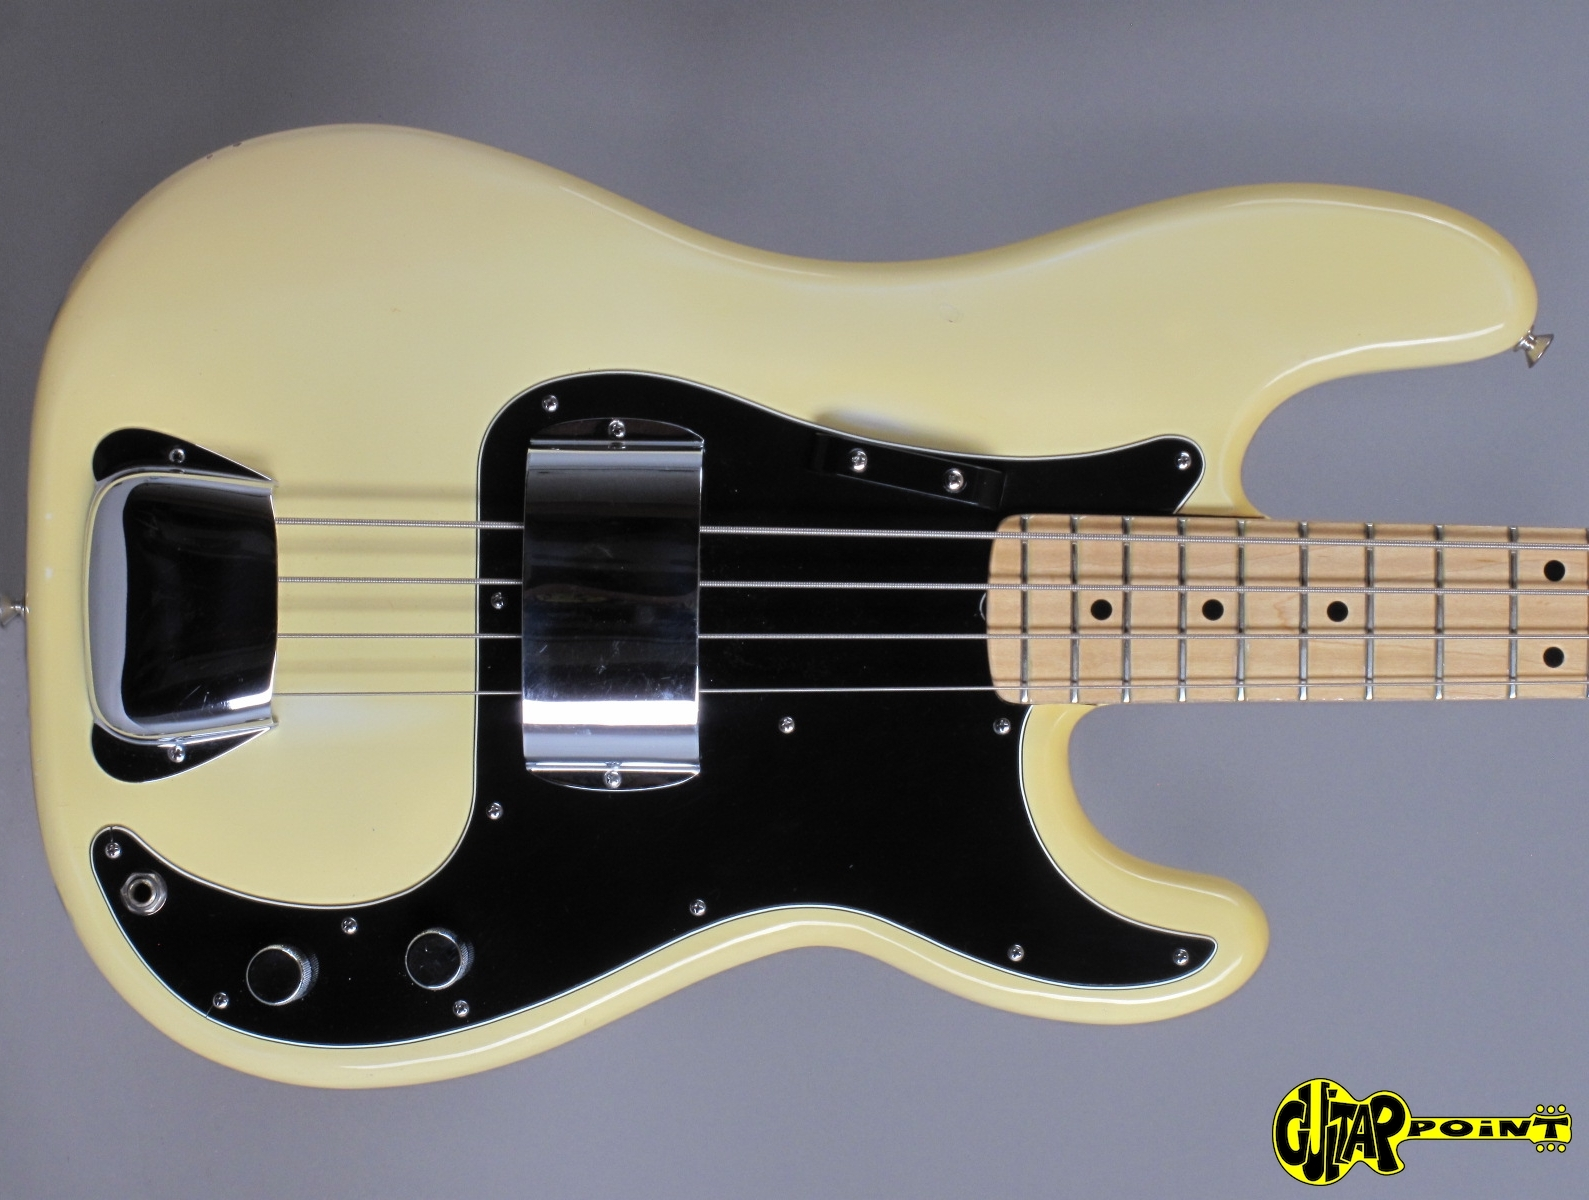 https://guitarpoint.de/app/uploads/products/1978-fender-precision-bass-olympic-white/Fender78PreciOW_S871519_2q.jpg